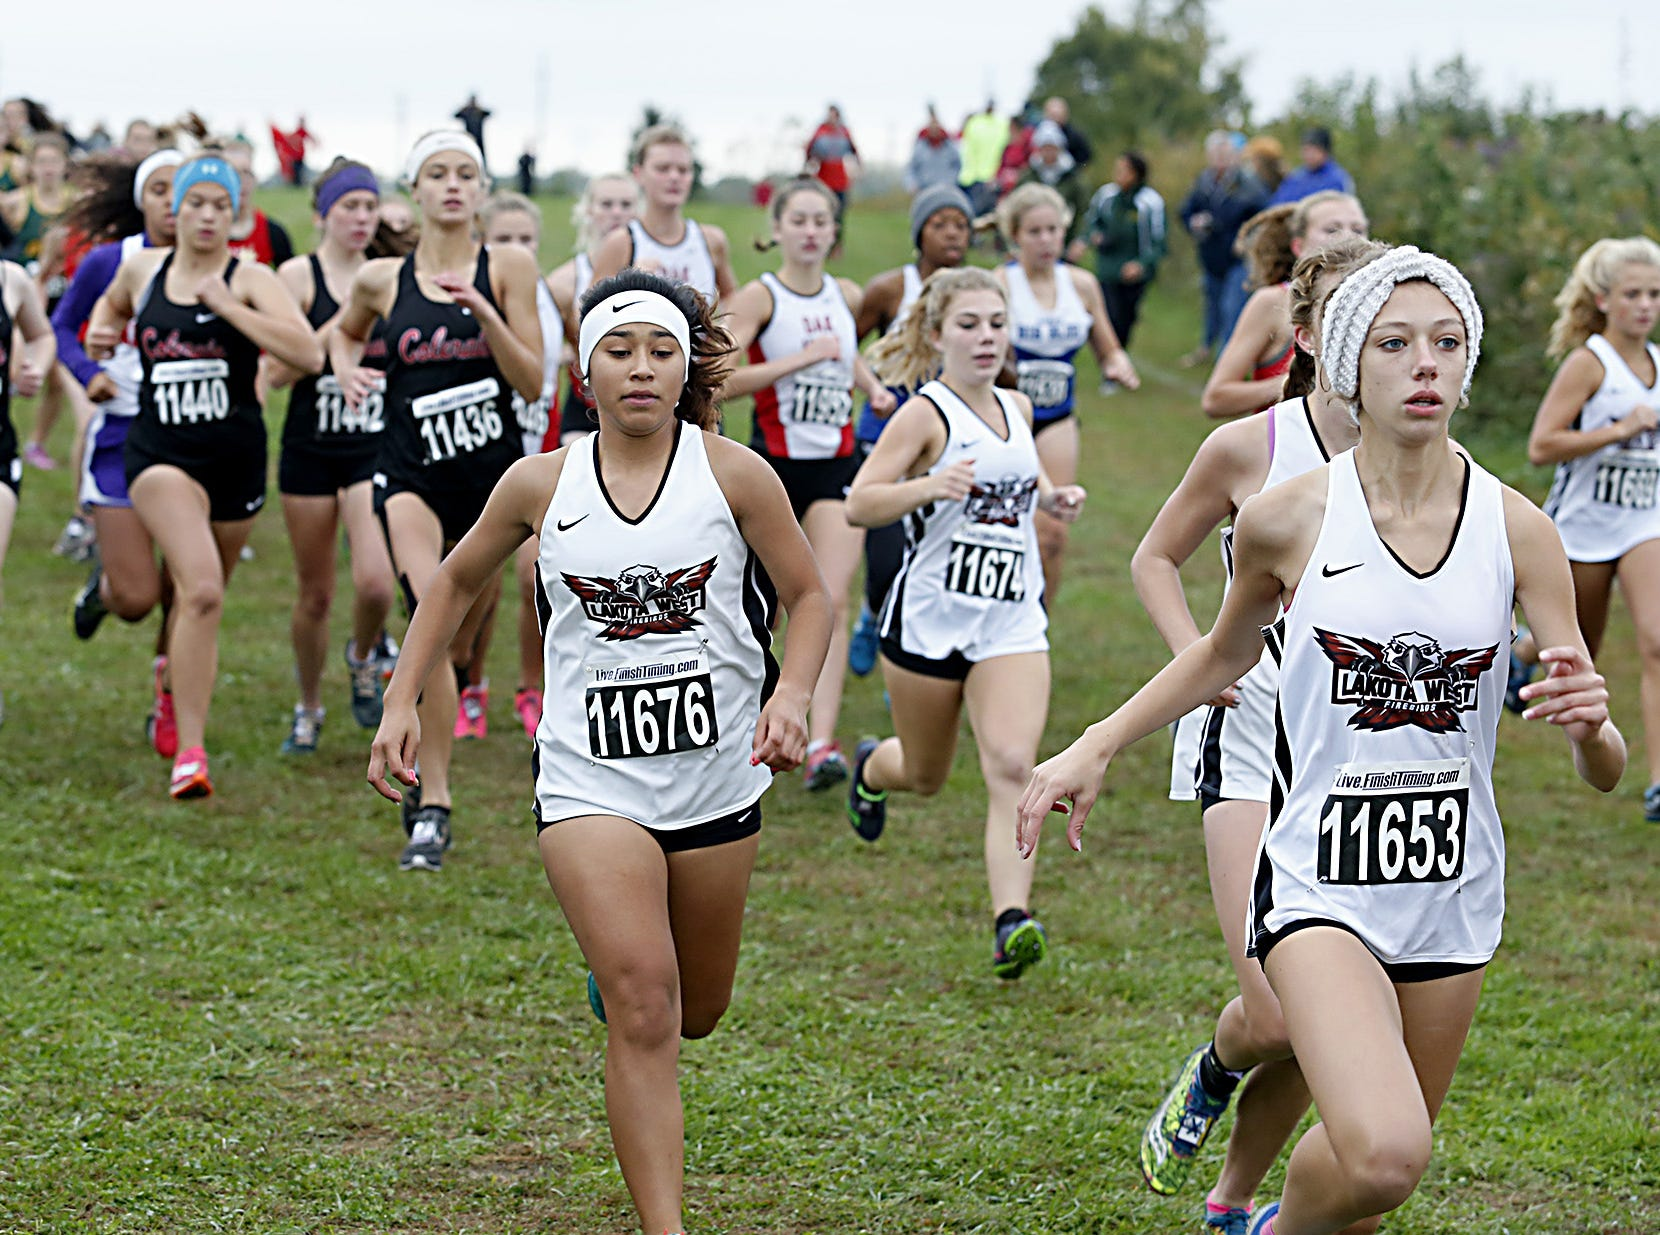 Lakota West girls begin their race during the Greater Miami Conference Girls and Boys Cross Country Championships at Voice of America Park in West Chester Saturday, Oct. 13, 2018.